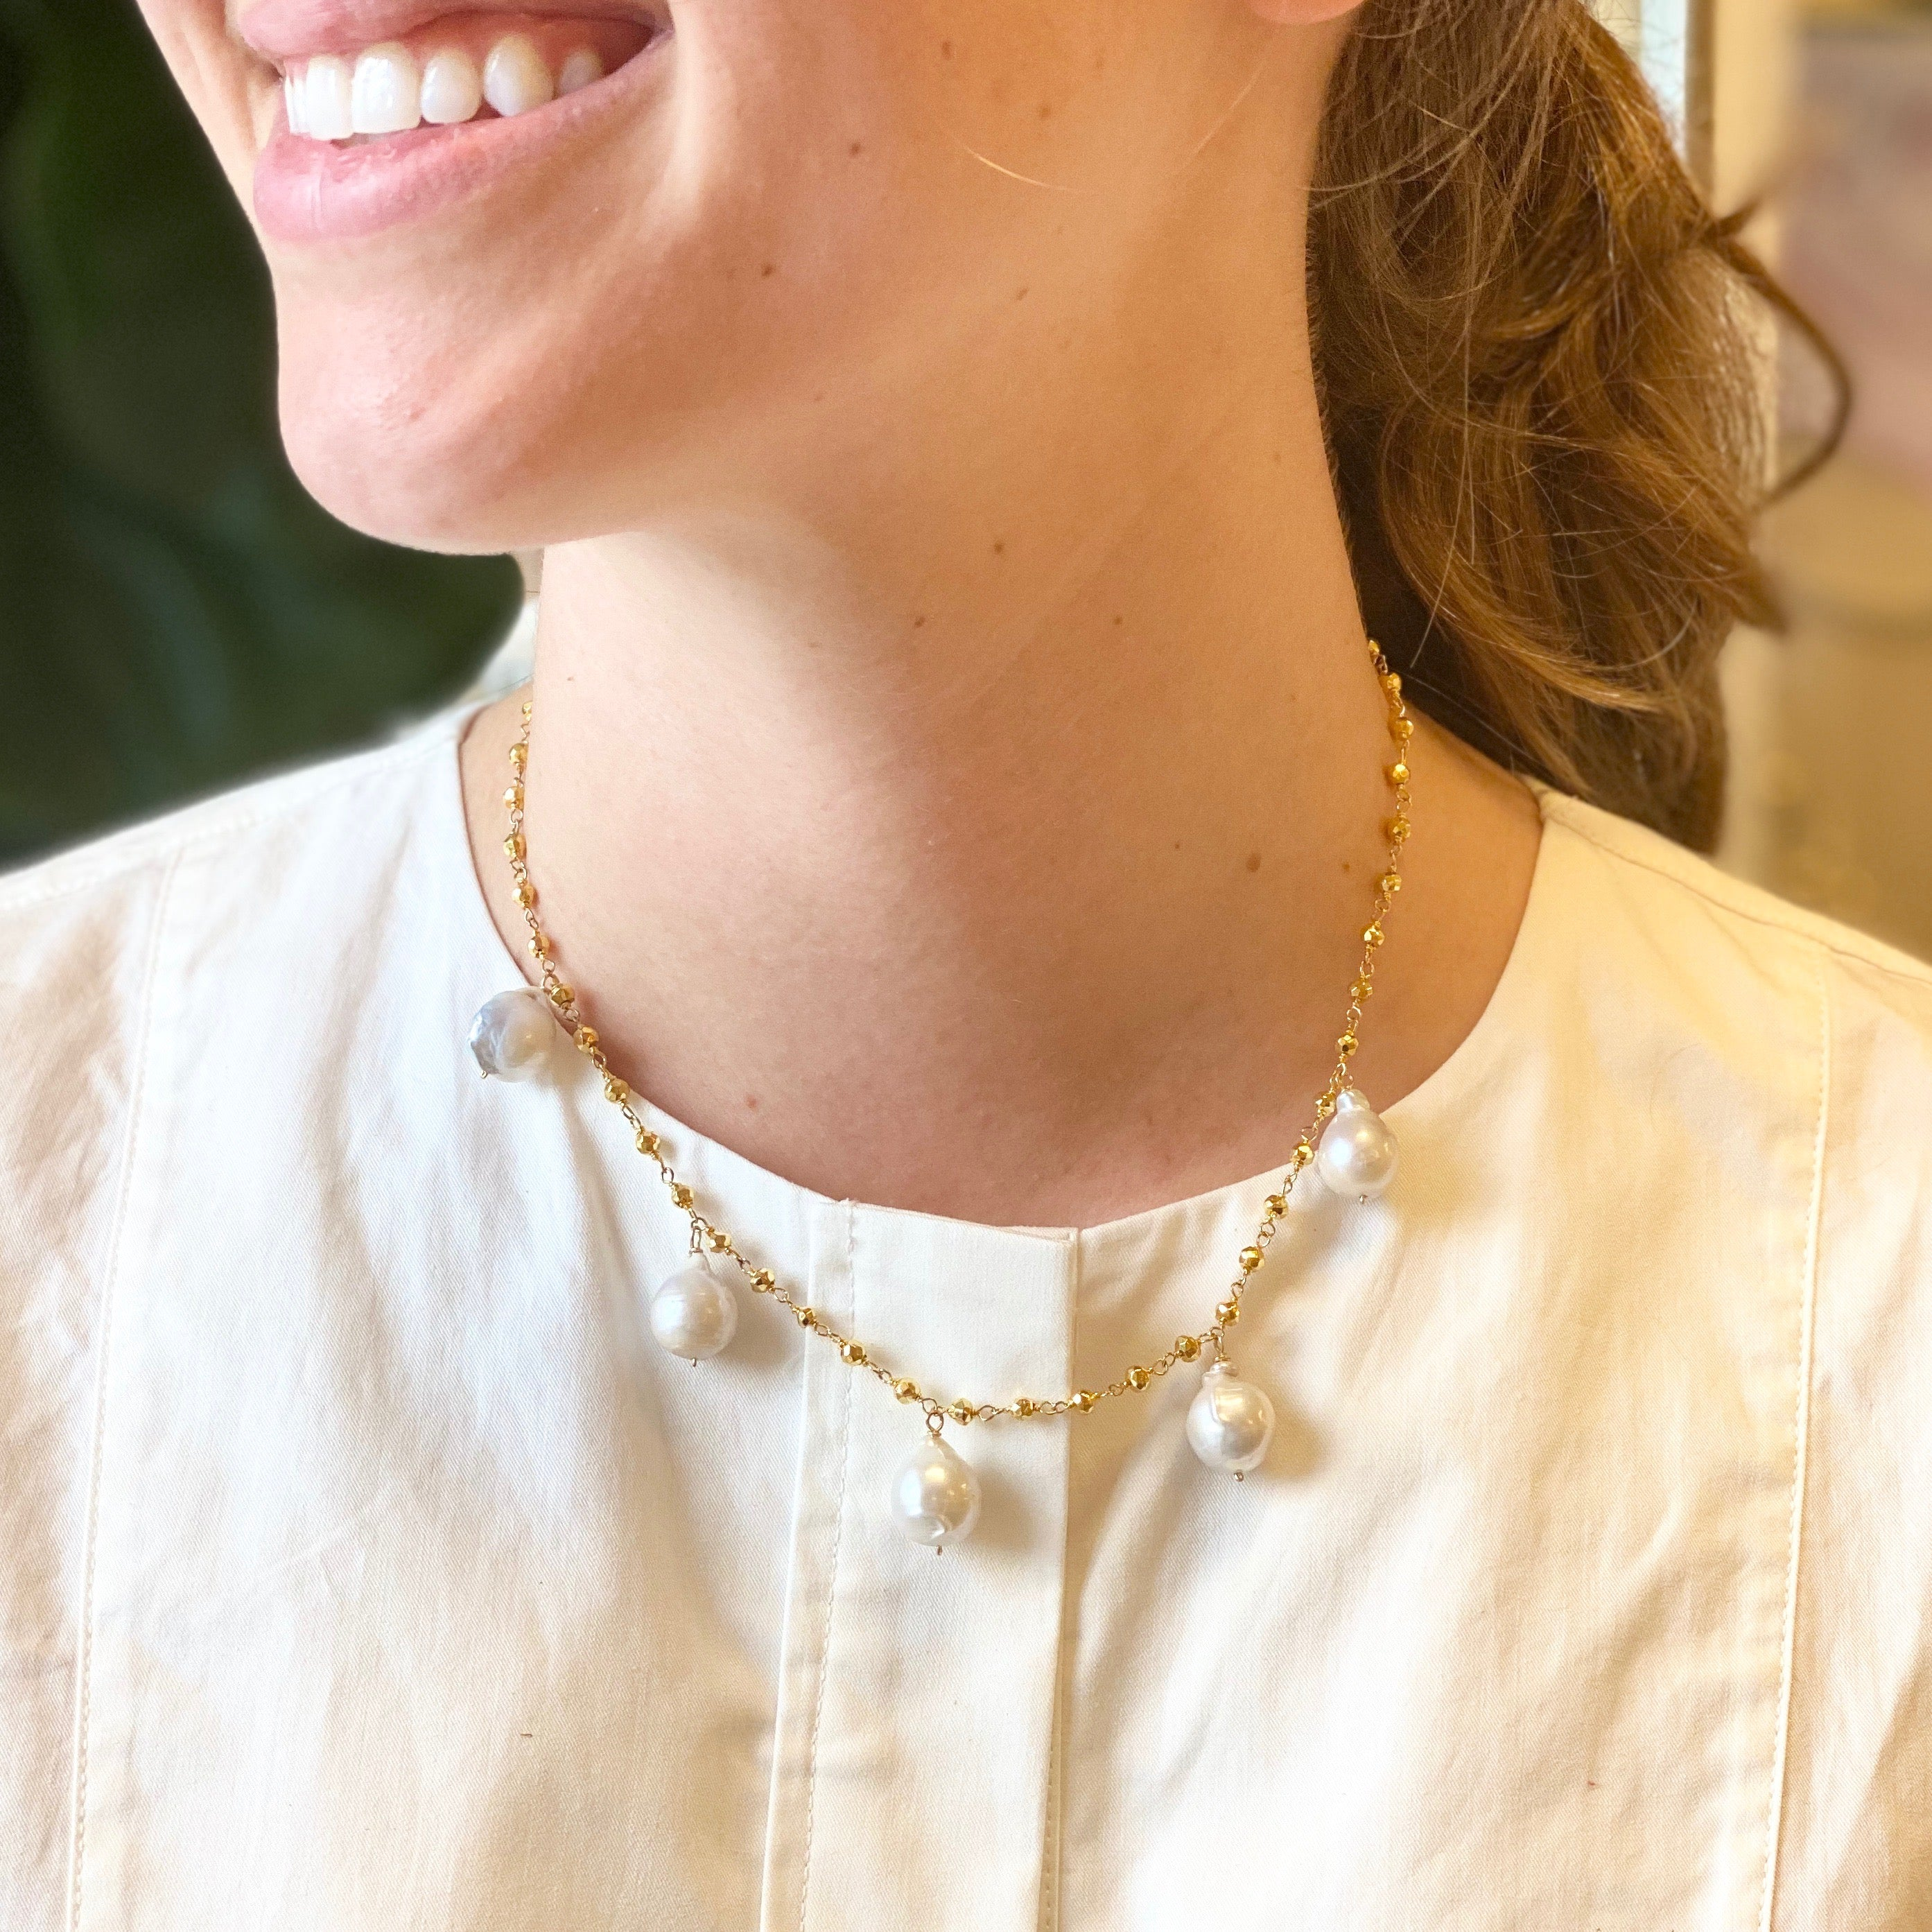 Gold and Pearl Chain Necklace